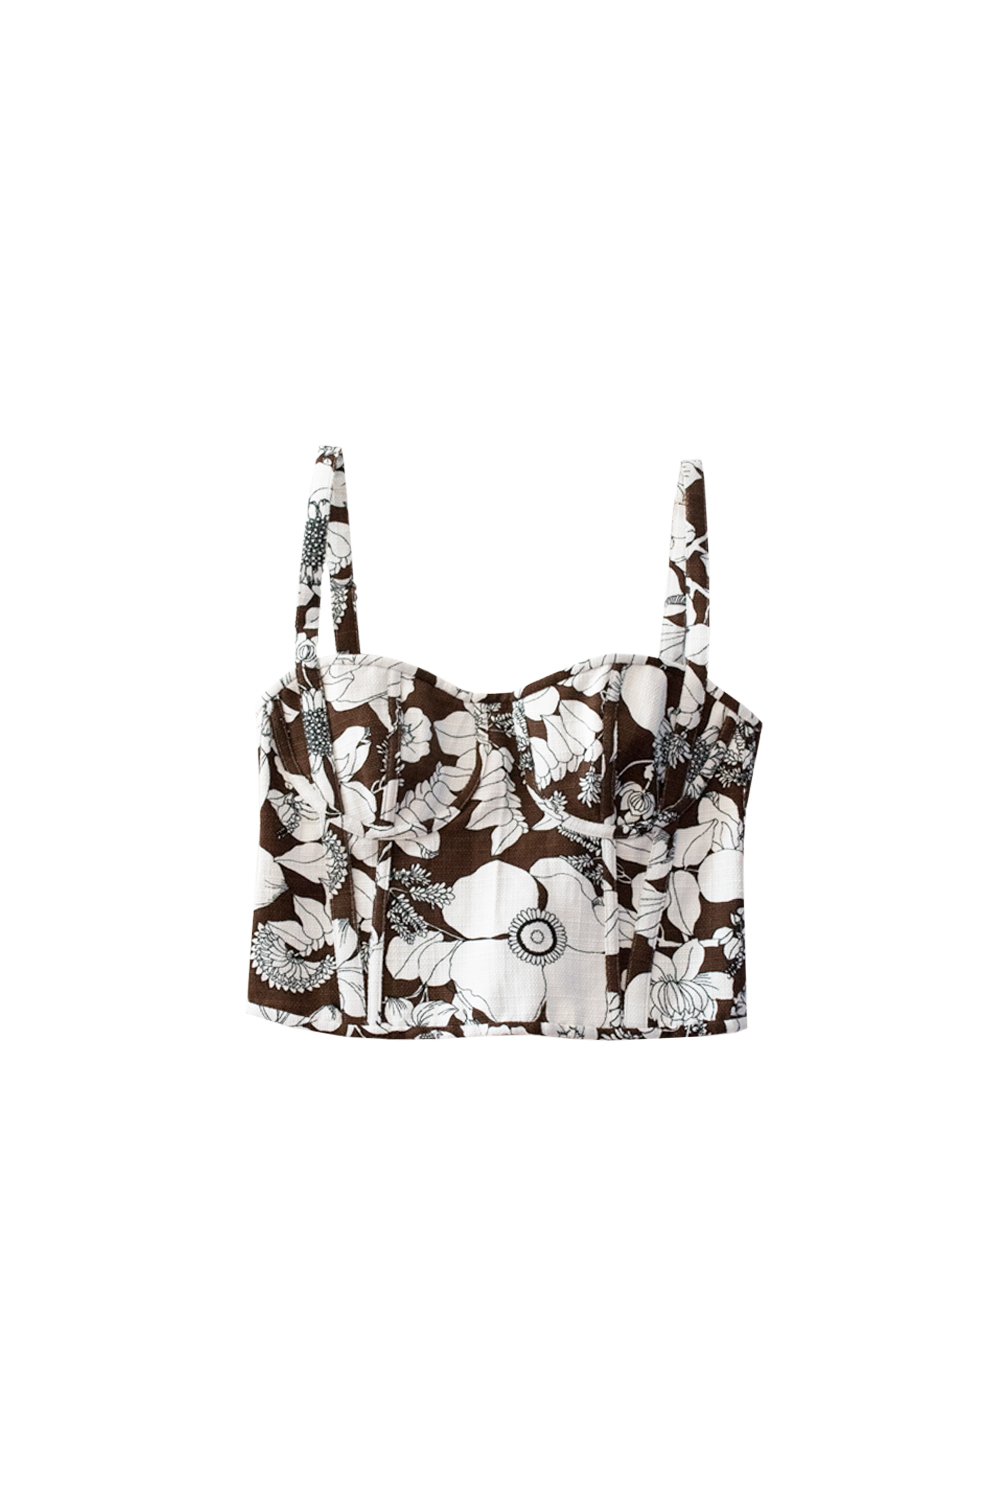 The Erin Top - brown / white floral